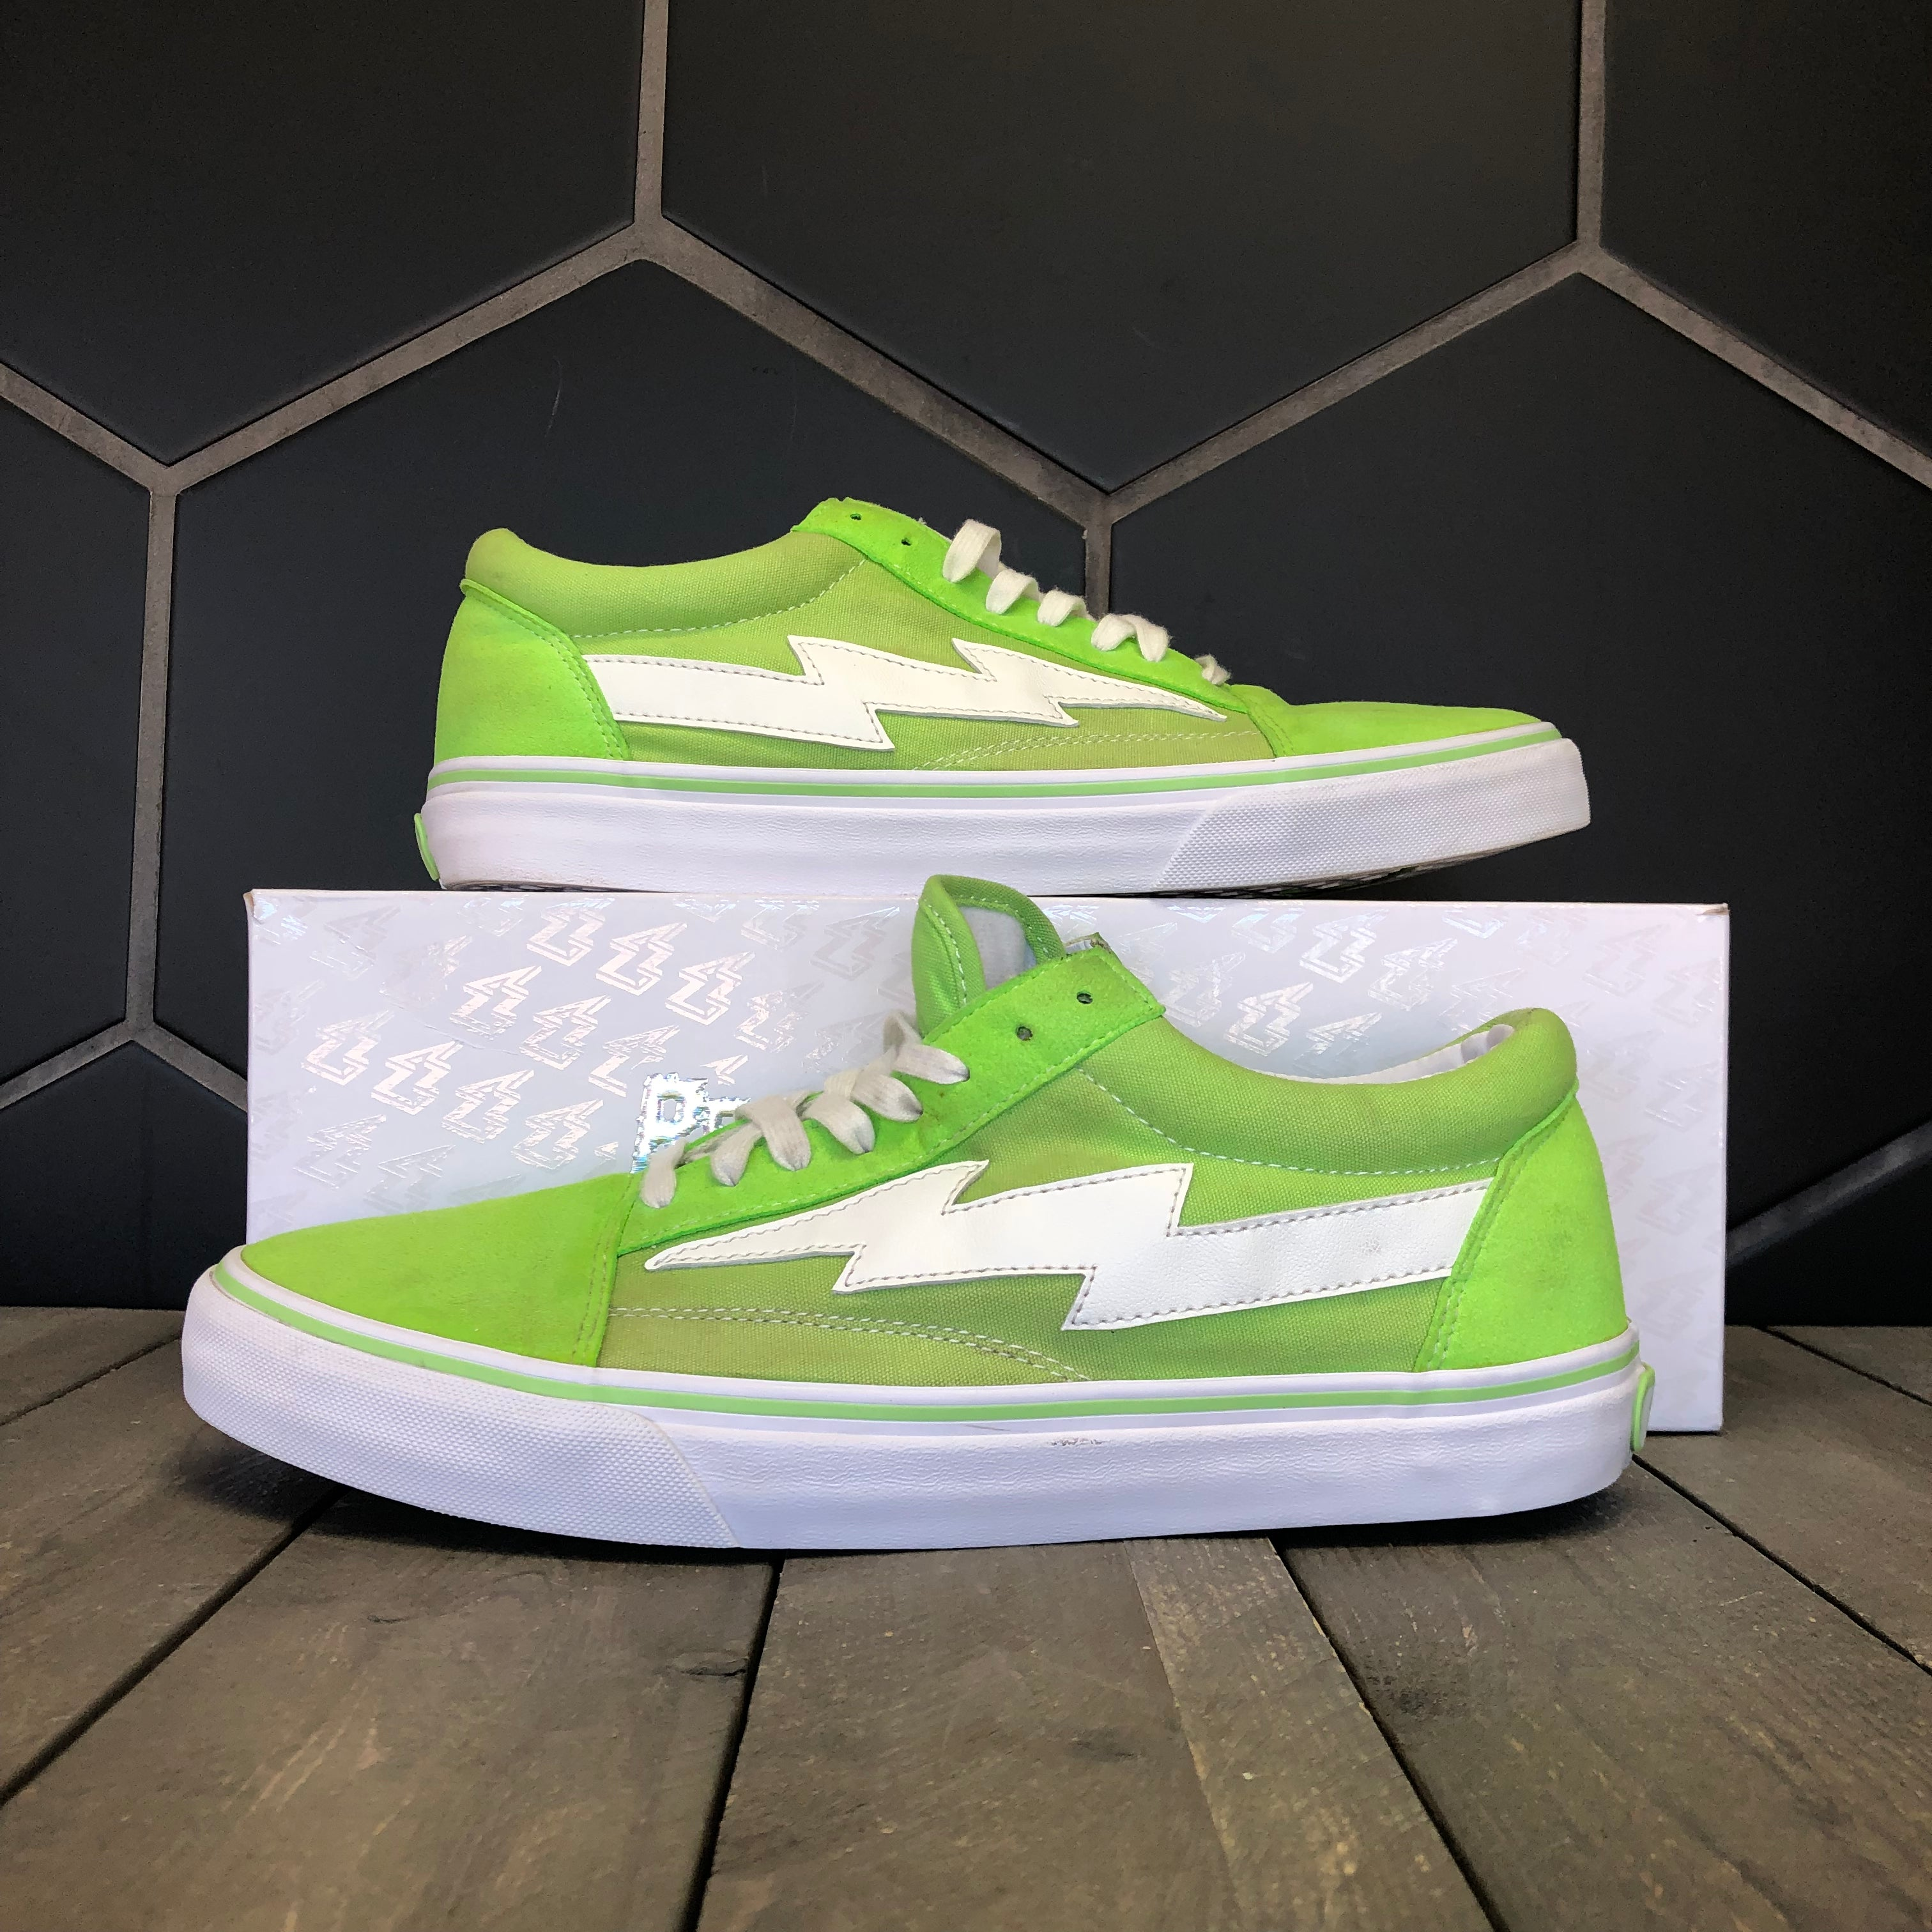 Used W/ Box! Revenge x Storm Bolt Green Lime Sneakers Size 11